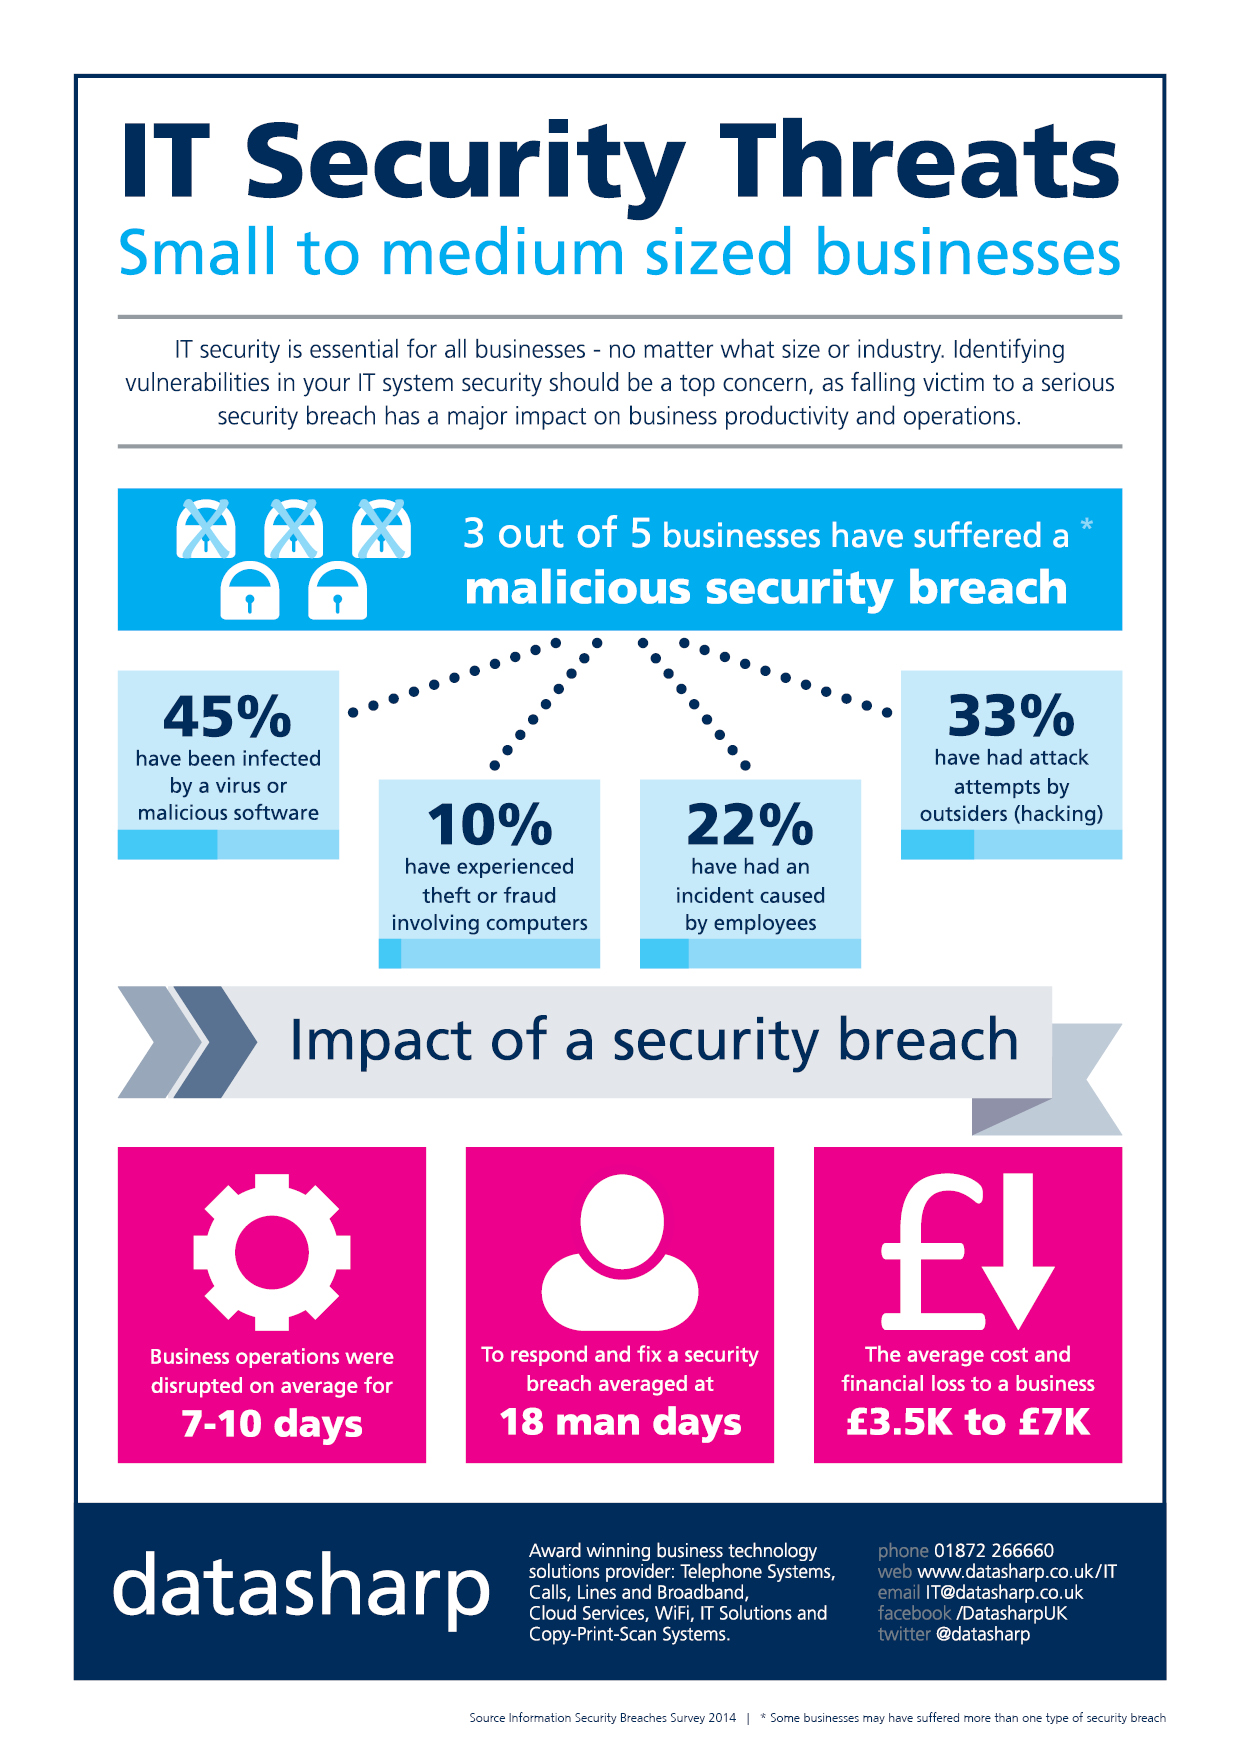 IT Security Infographic 2014